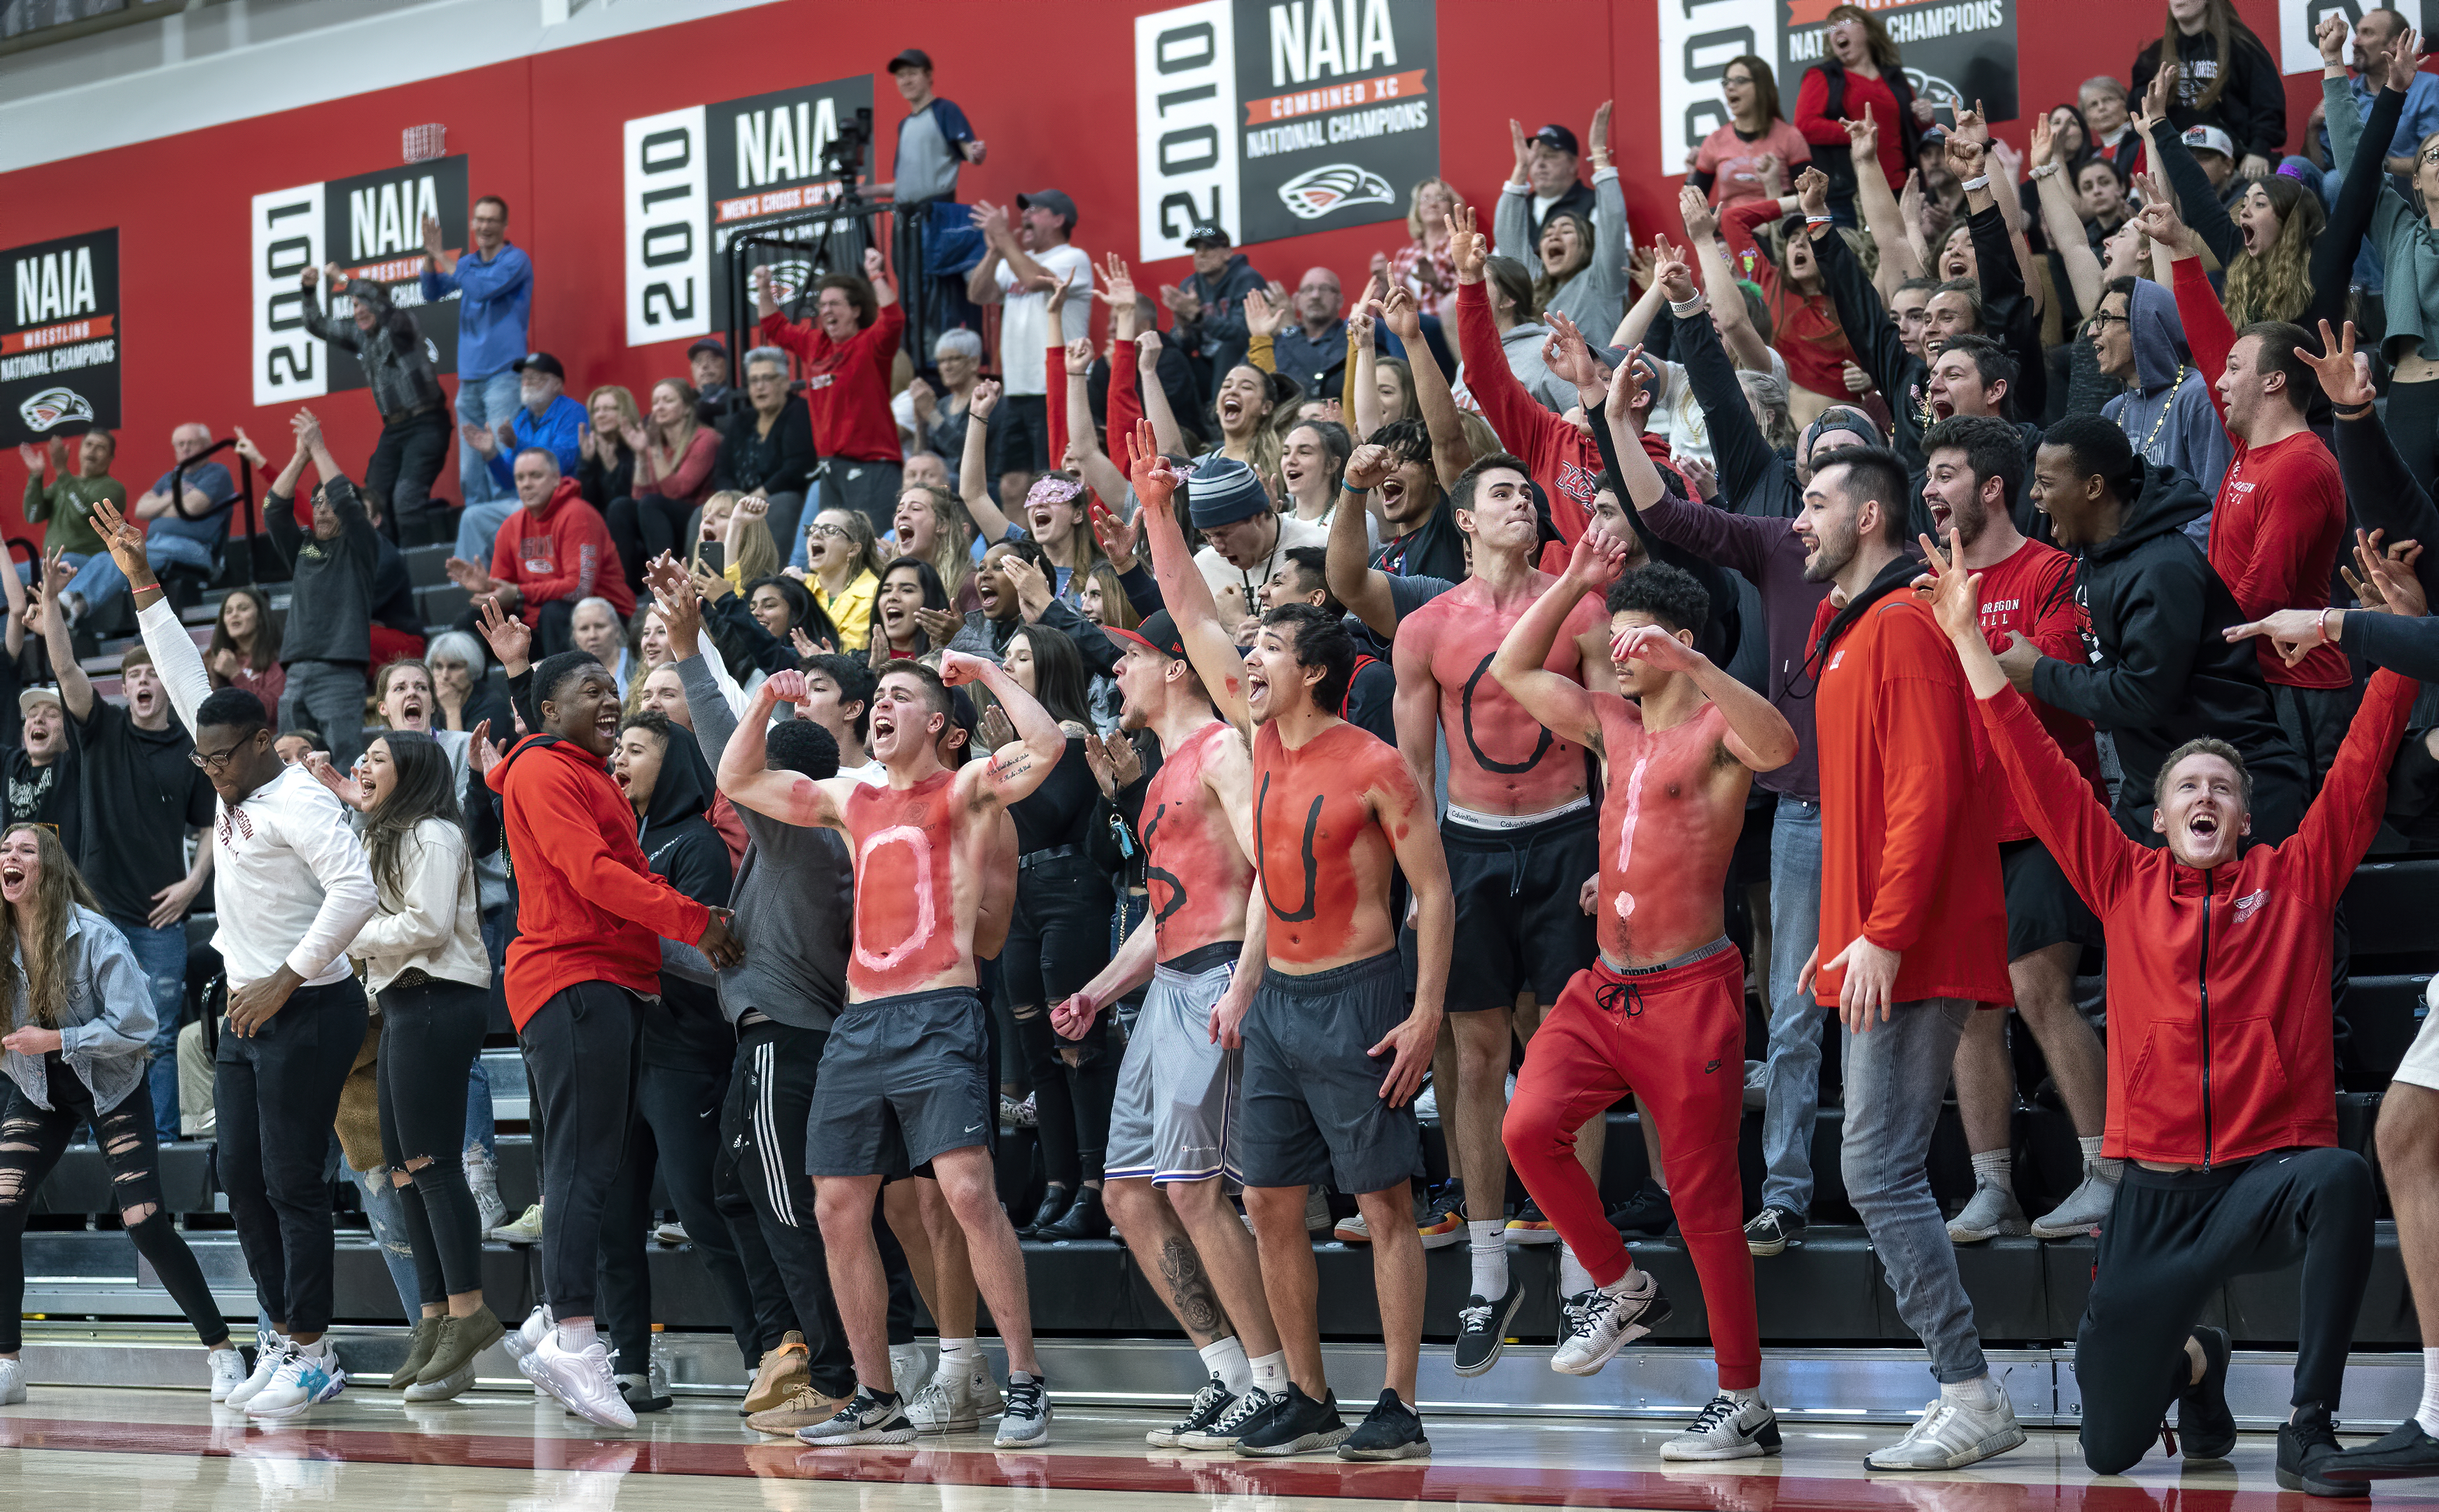 sou womens basketball crowd - topaz ai denoise